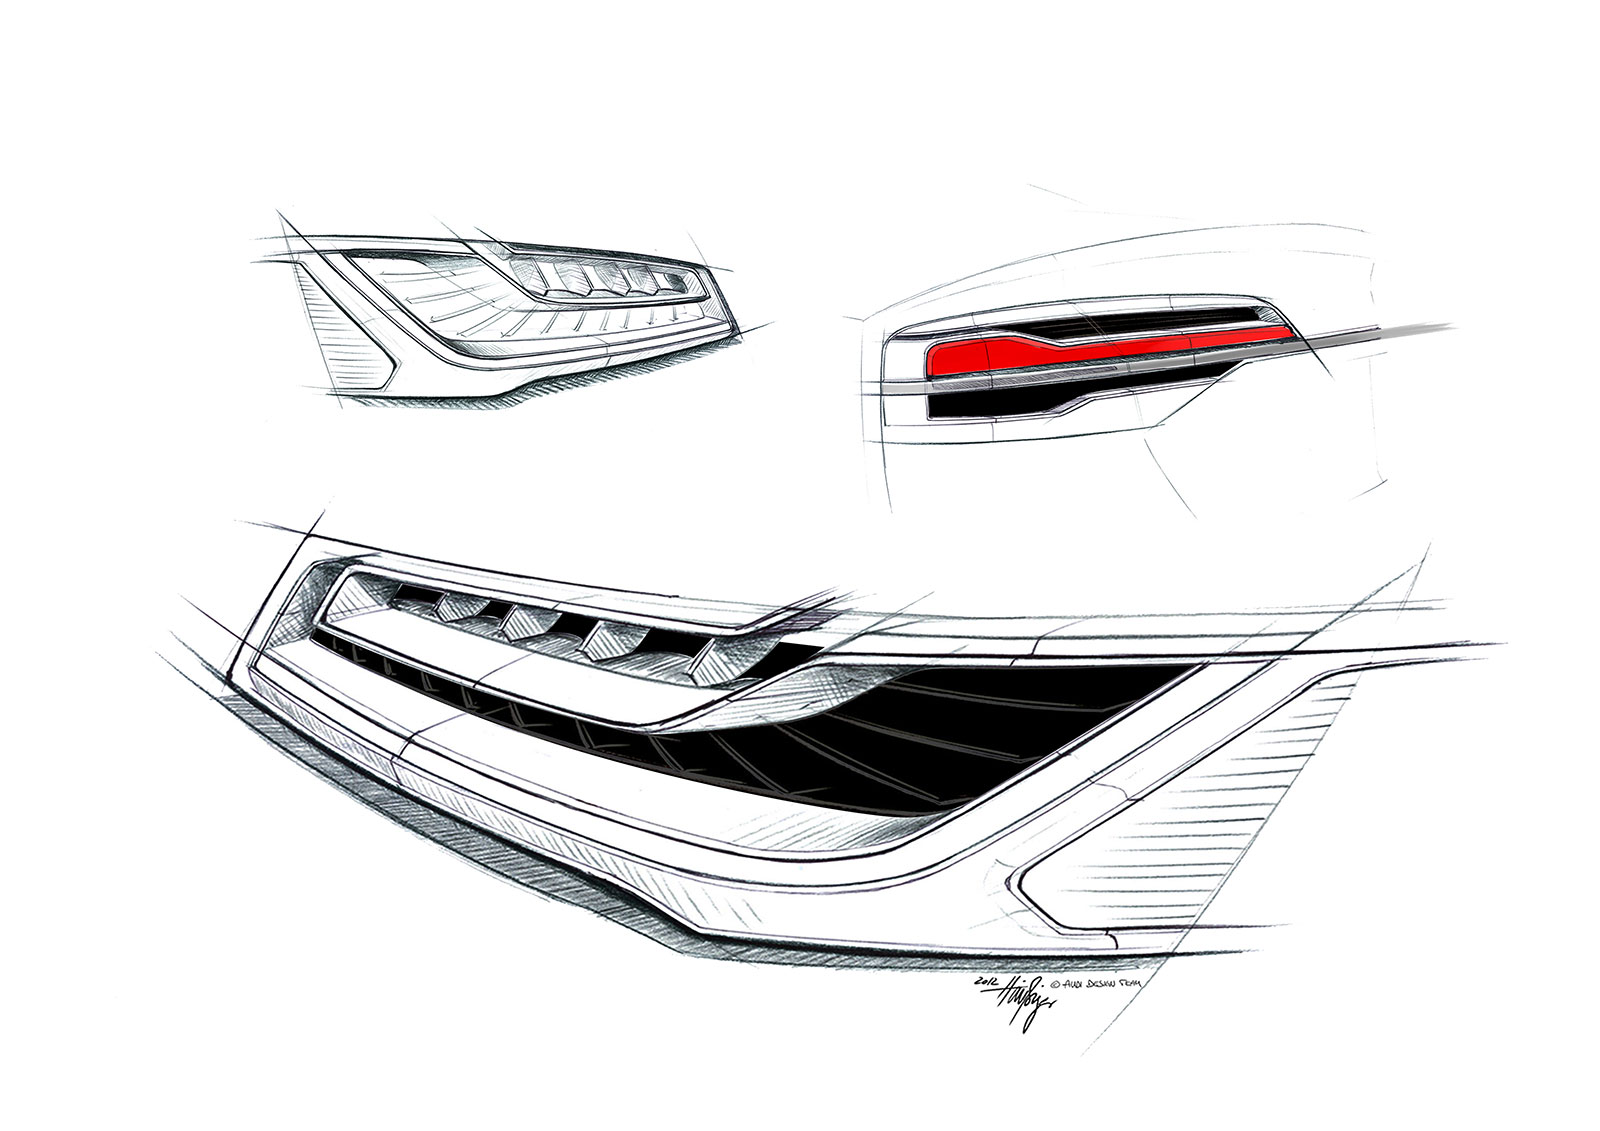 Mariner Hybrid Review together with Phonocar 4 775 Set Cavi Autoradio Antenna Opel furthermore Audi Q5 Dimensioni moreover New 2018 Honda Gold Wing Patents Show Huge Changes In The besides Brevetti ferrari ibrida 480301044. on audi q5 crossover